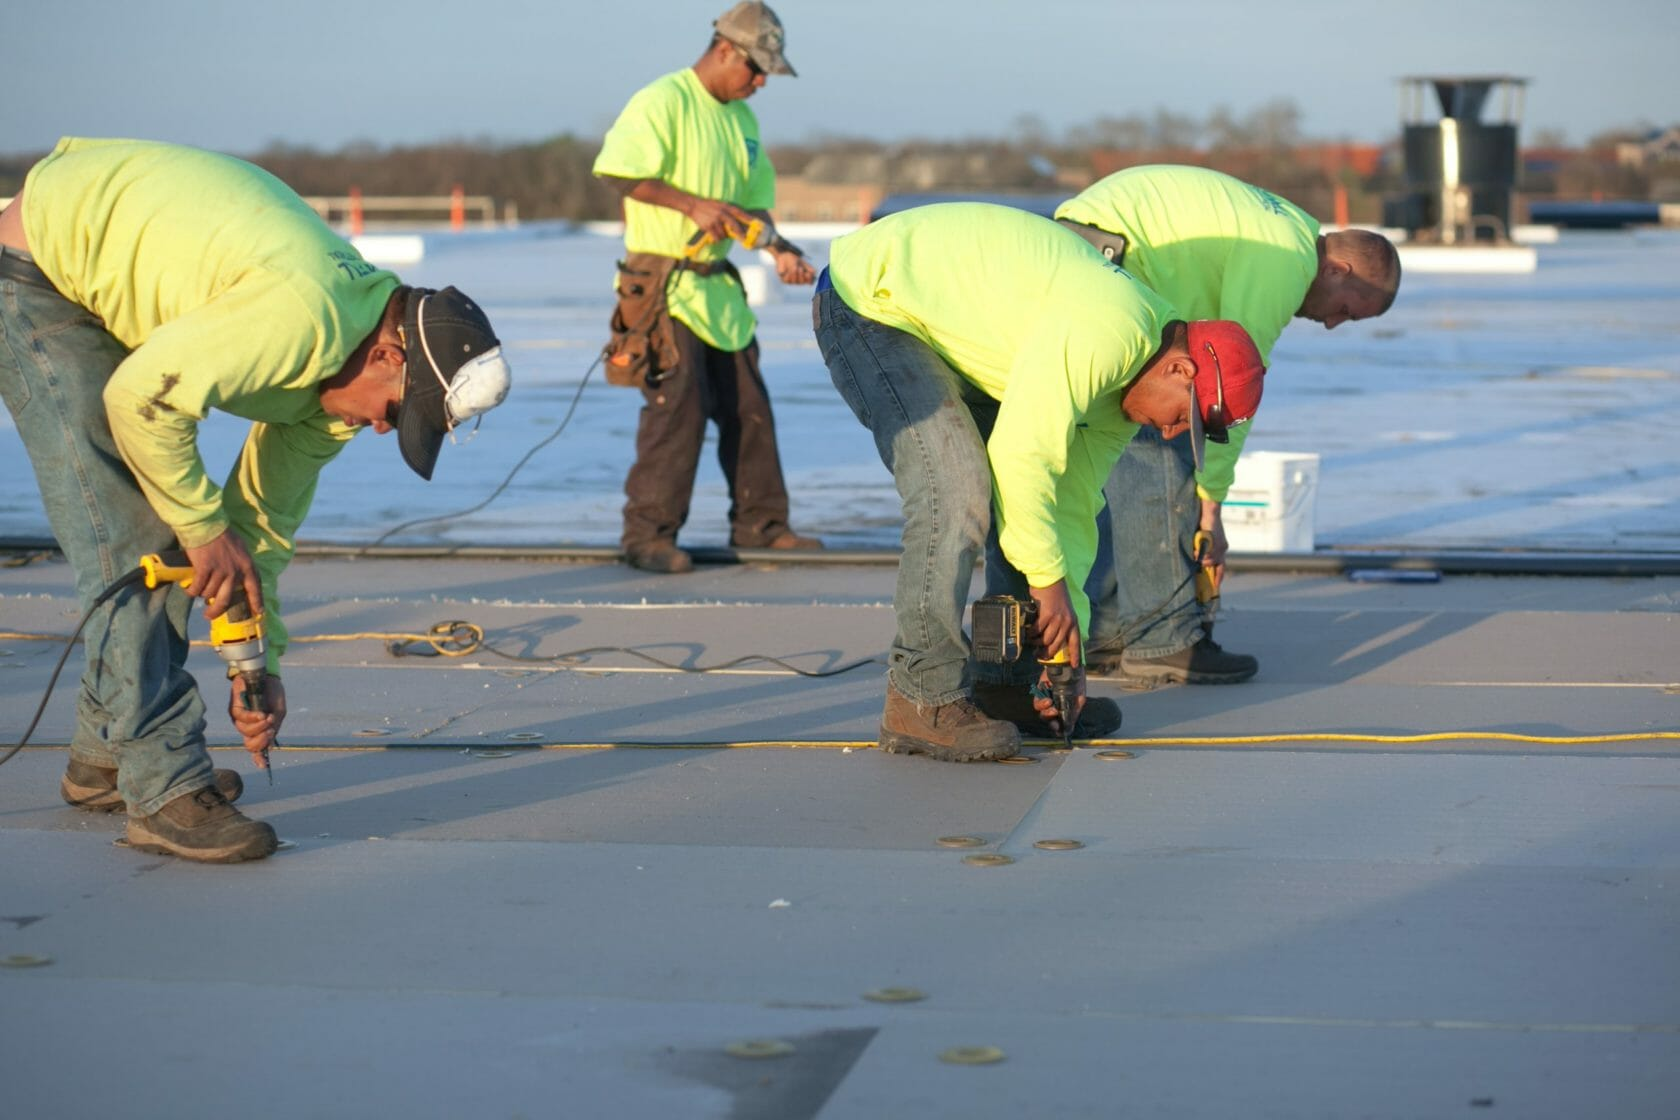 Maxwell Roofing workers repairing a commercial roof